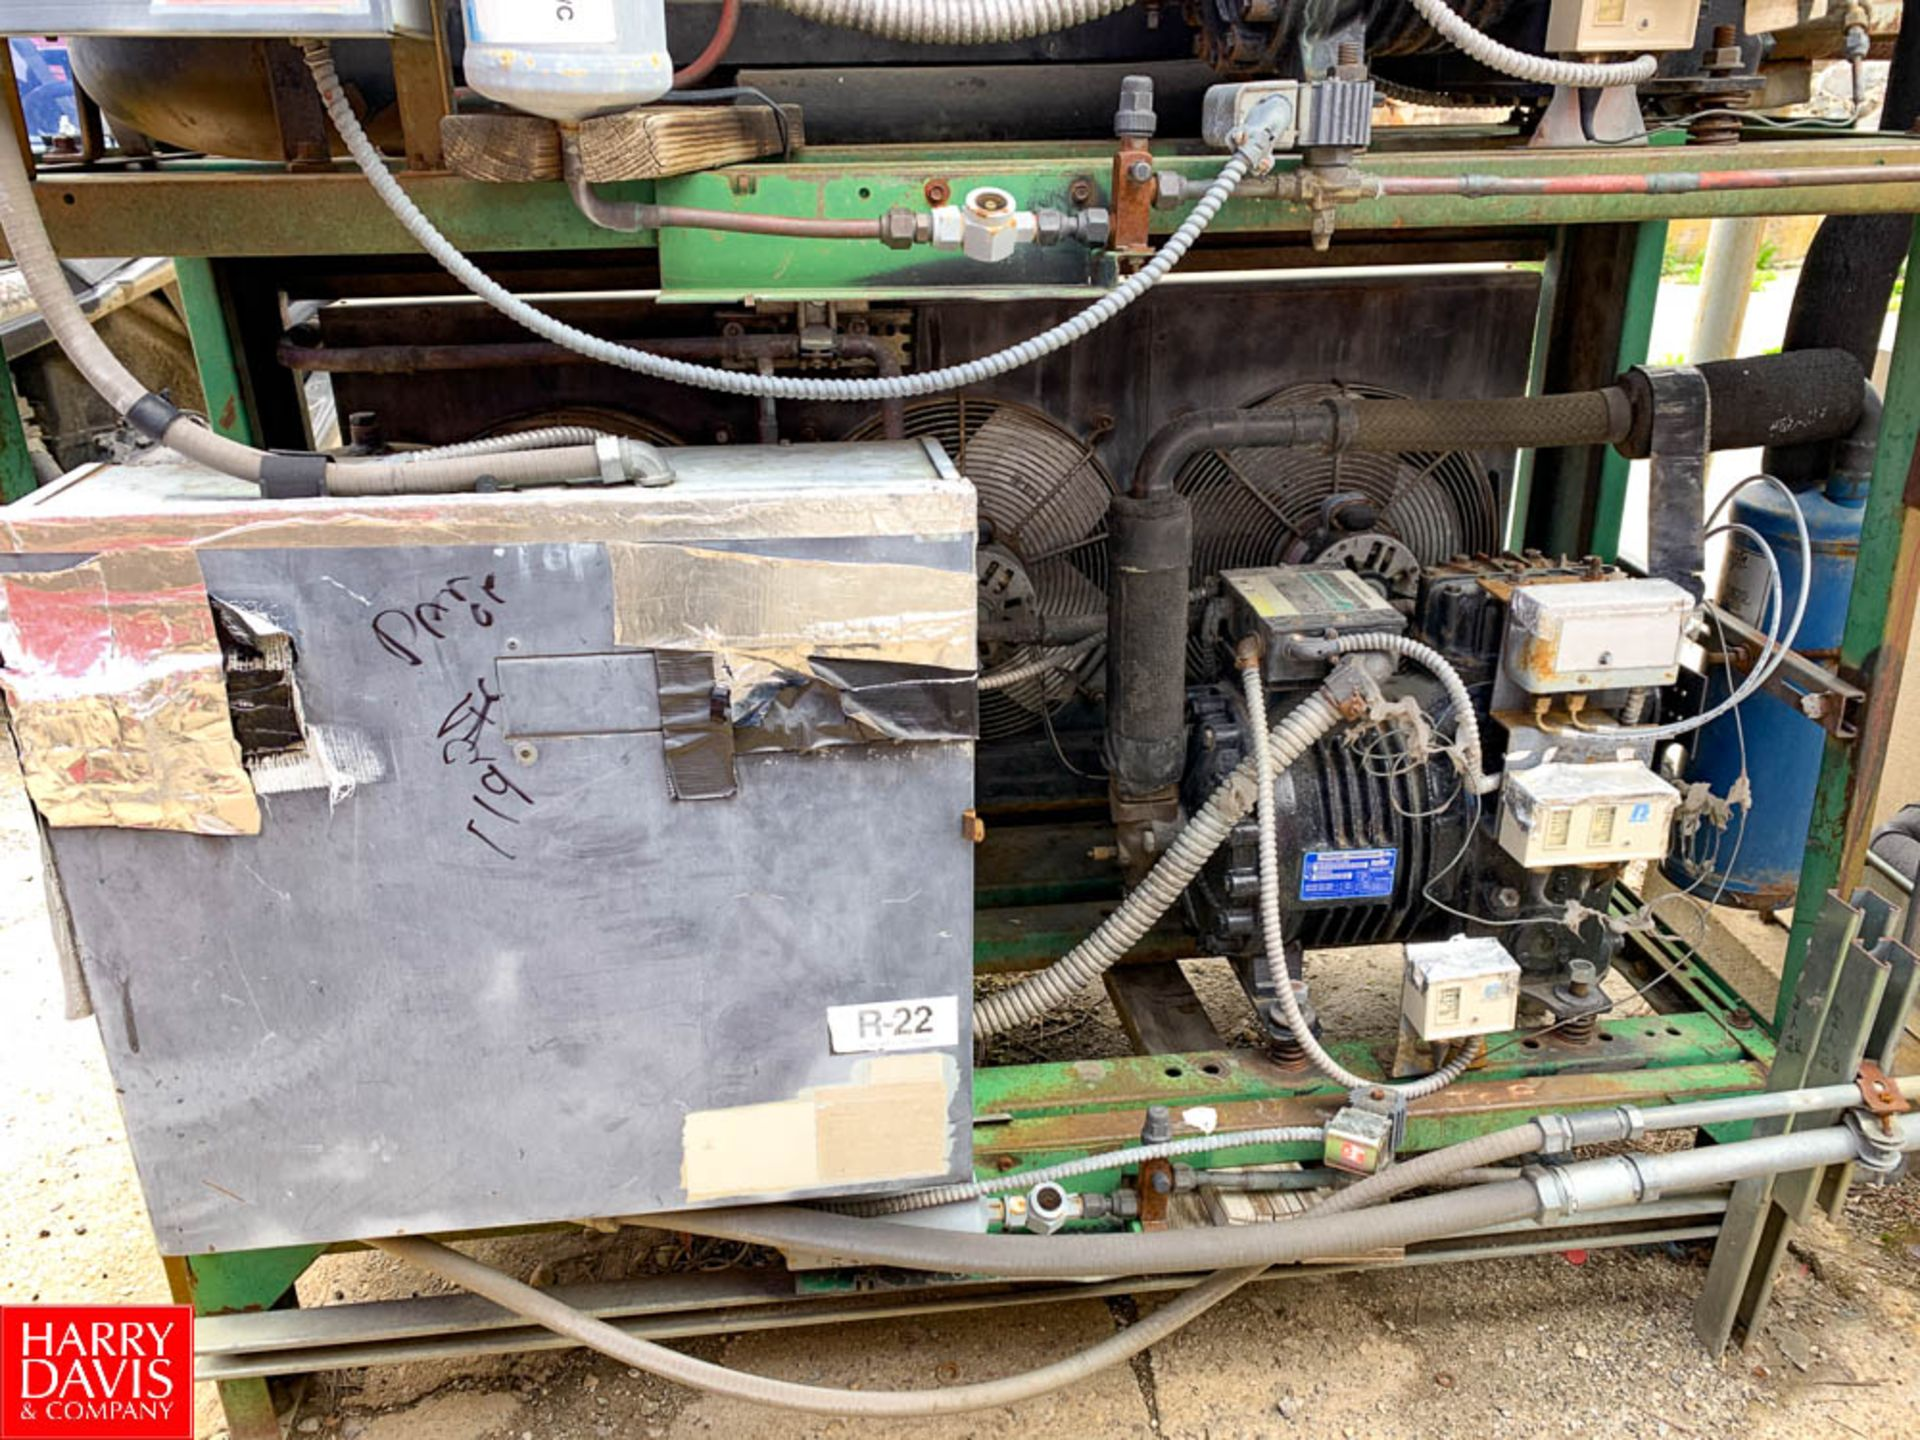 Girton Freon Refrigerated Ice Builder Model: KZ6086, S/N: 08053001, with S/S Coils, (2) Pumps and ( - Image 3 of 3